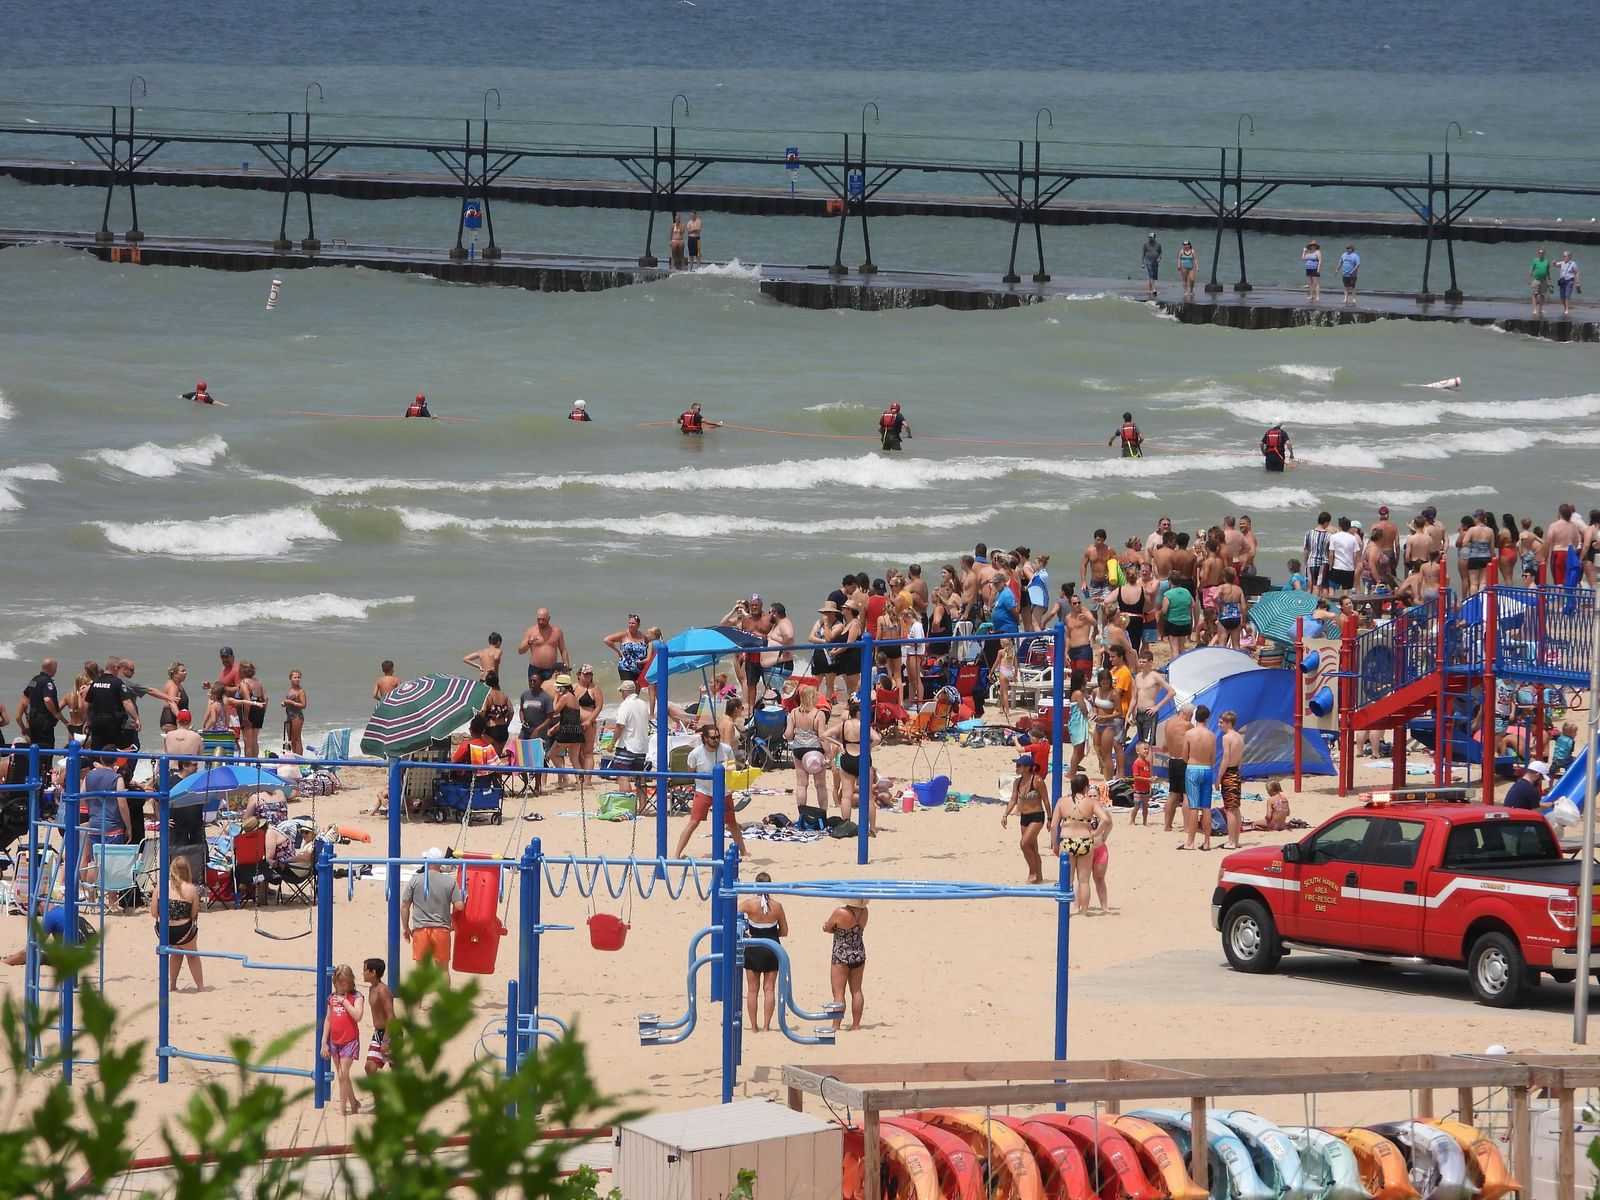 For awhile it was believed there might be a another victim in need of a water rescue on Friday. SHAES responders formed a rescue rope line, until they determined that there was not a second person. (WWMT/Courtesy of South Haven Area Emergency Services)